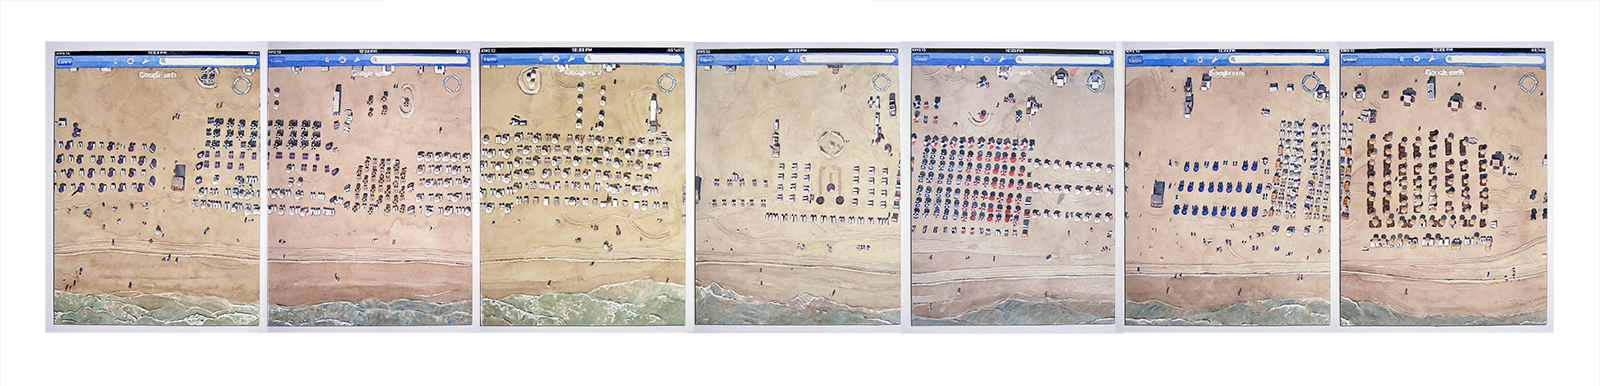 """Looking    Down  From Above - 25.79239 N 80.12592 W    Watercolor on paperboard    7 panels: 7.75"""" x 44"""" total, 7.75"""" x 7.75"""" each    2013"""